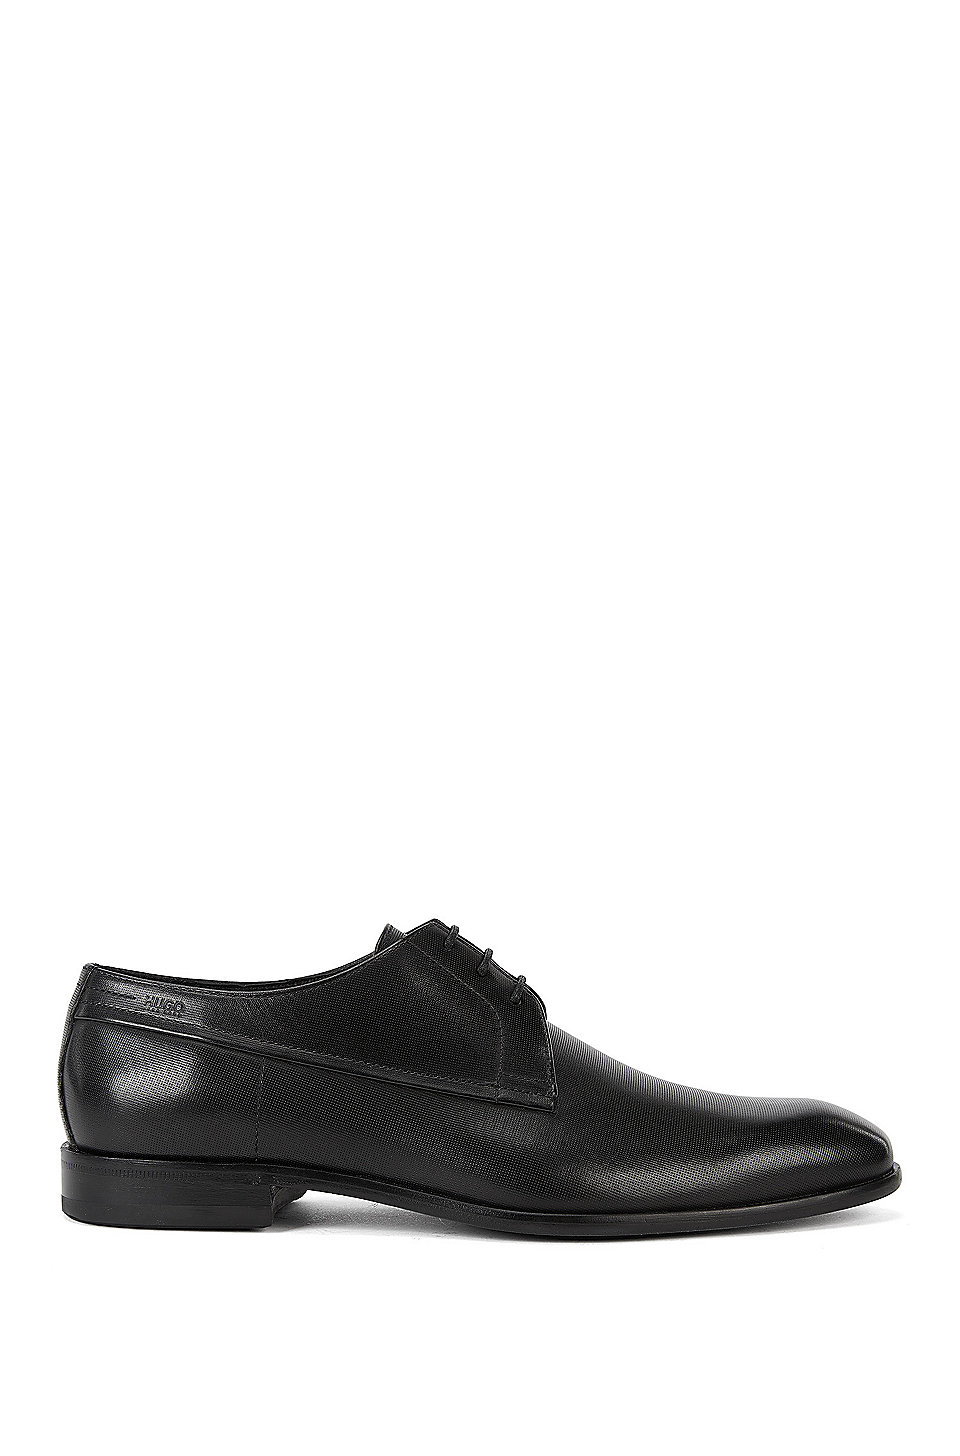 Derby shoes in embossed calf leather by HUGO Man HUGO BOSS rHNfc